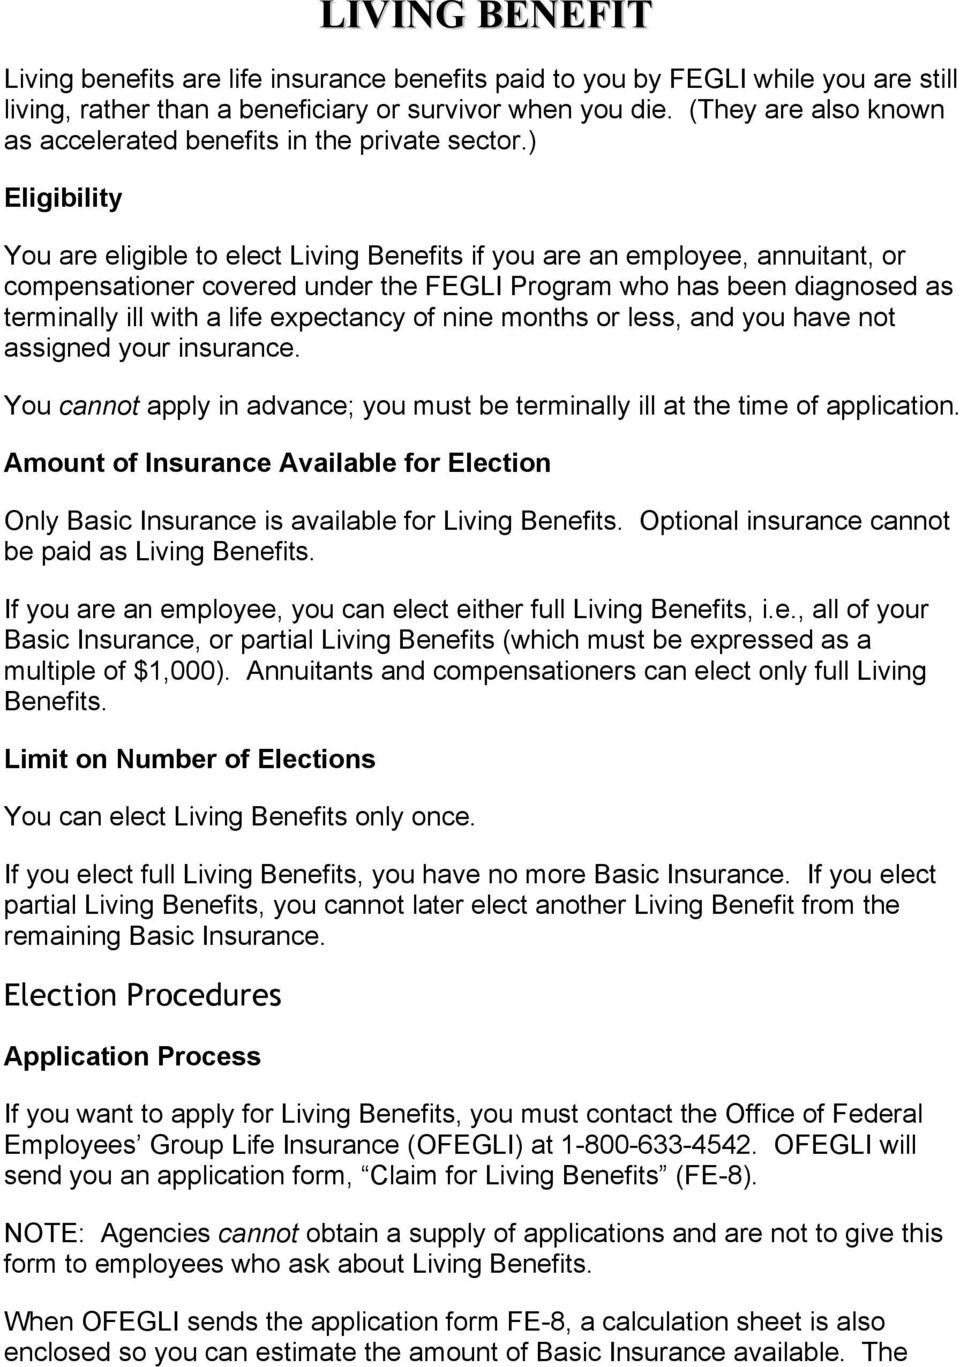 ) Eligibility You are eligible to elect Living Benefits if you are an employee, annuitant, or compensationer covered under the FEGLI Program who has been diagnosed as terminally ill with a life